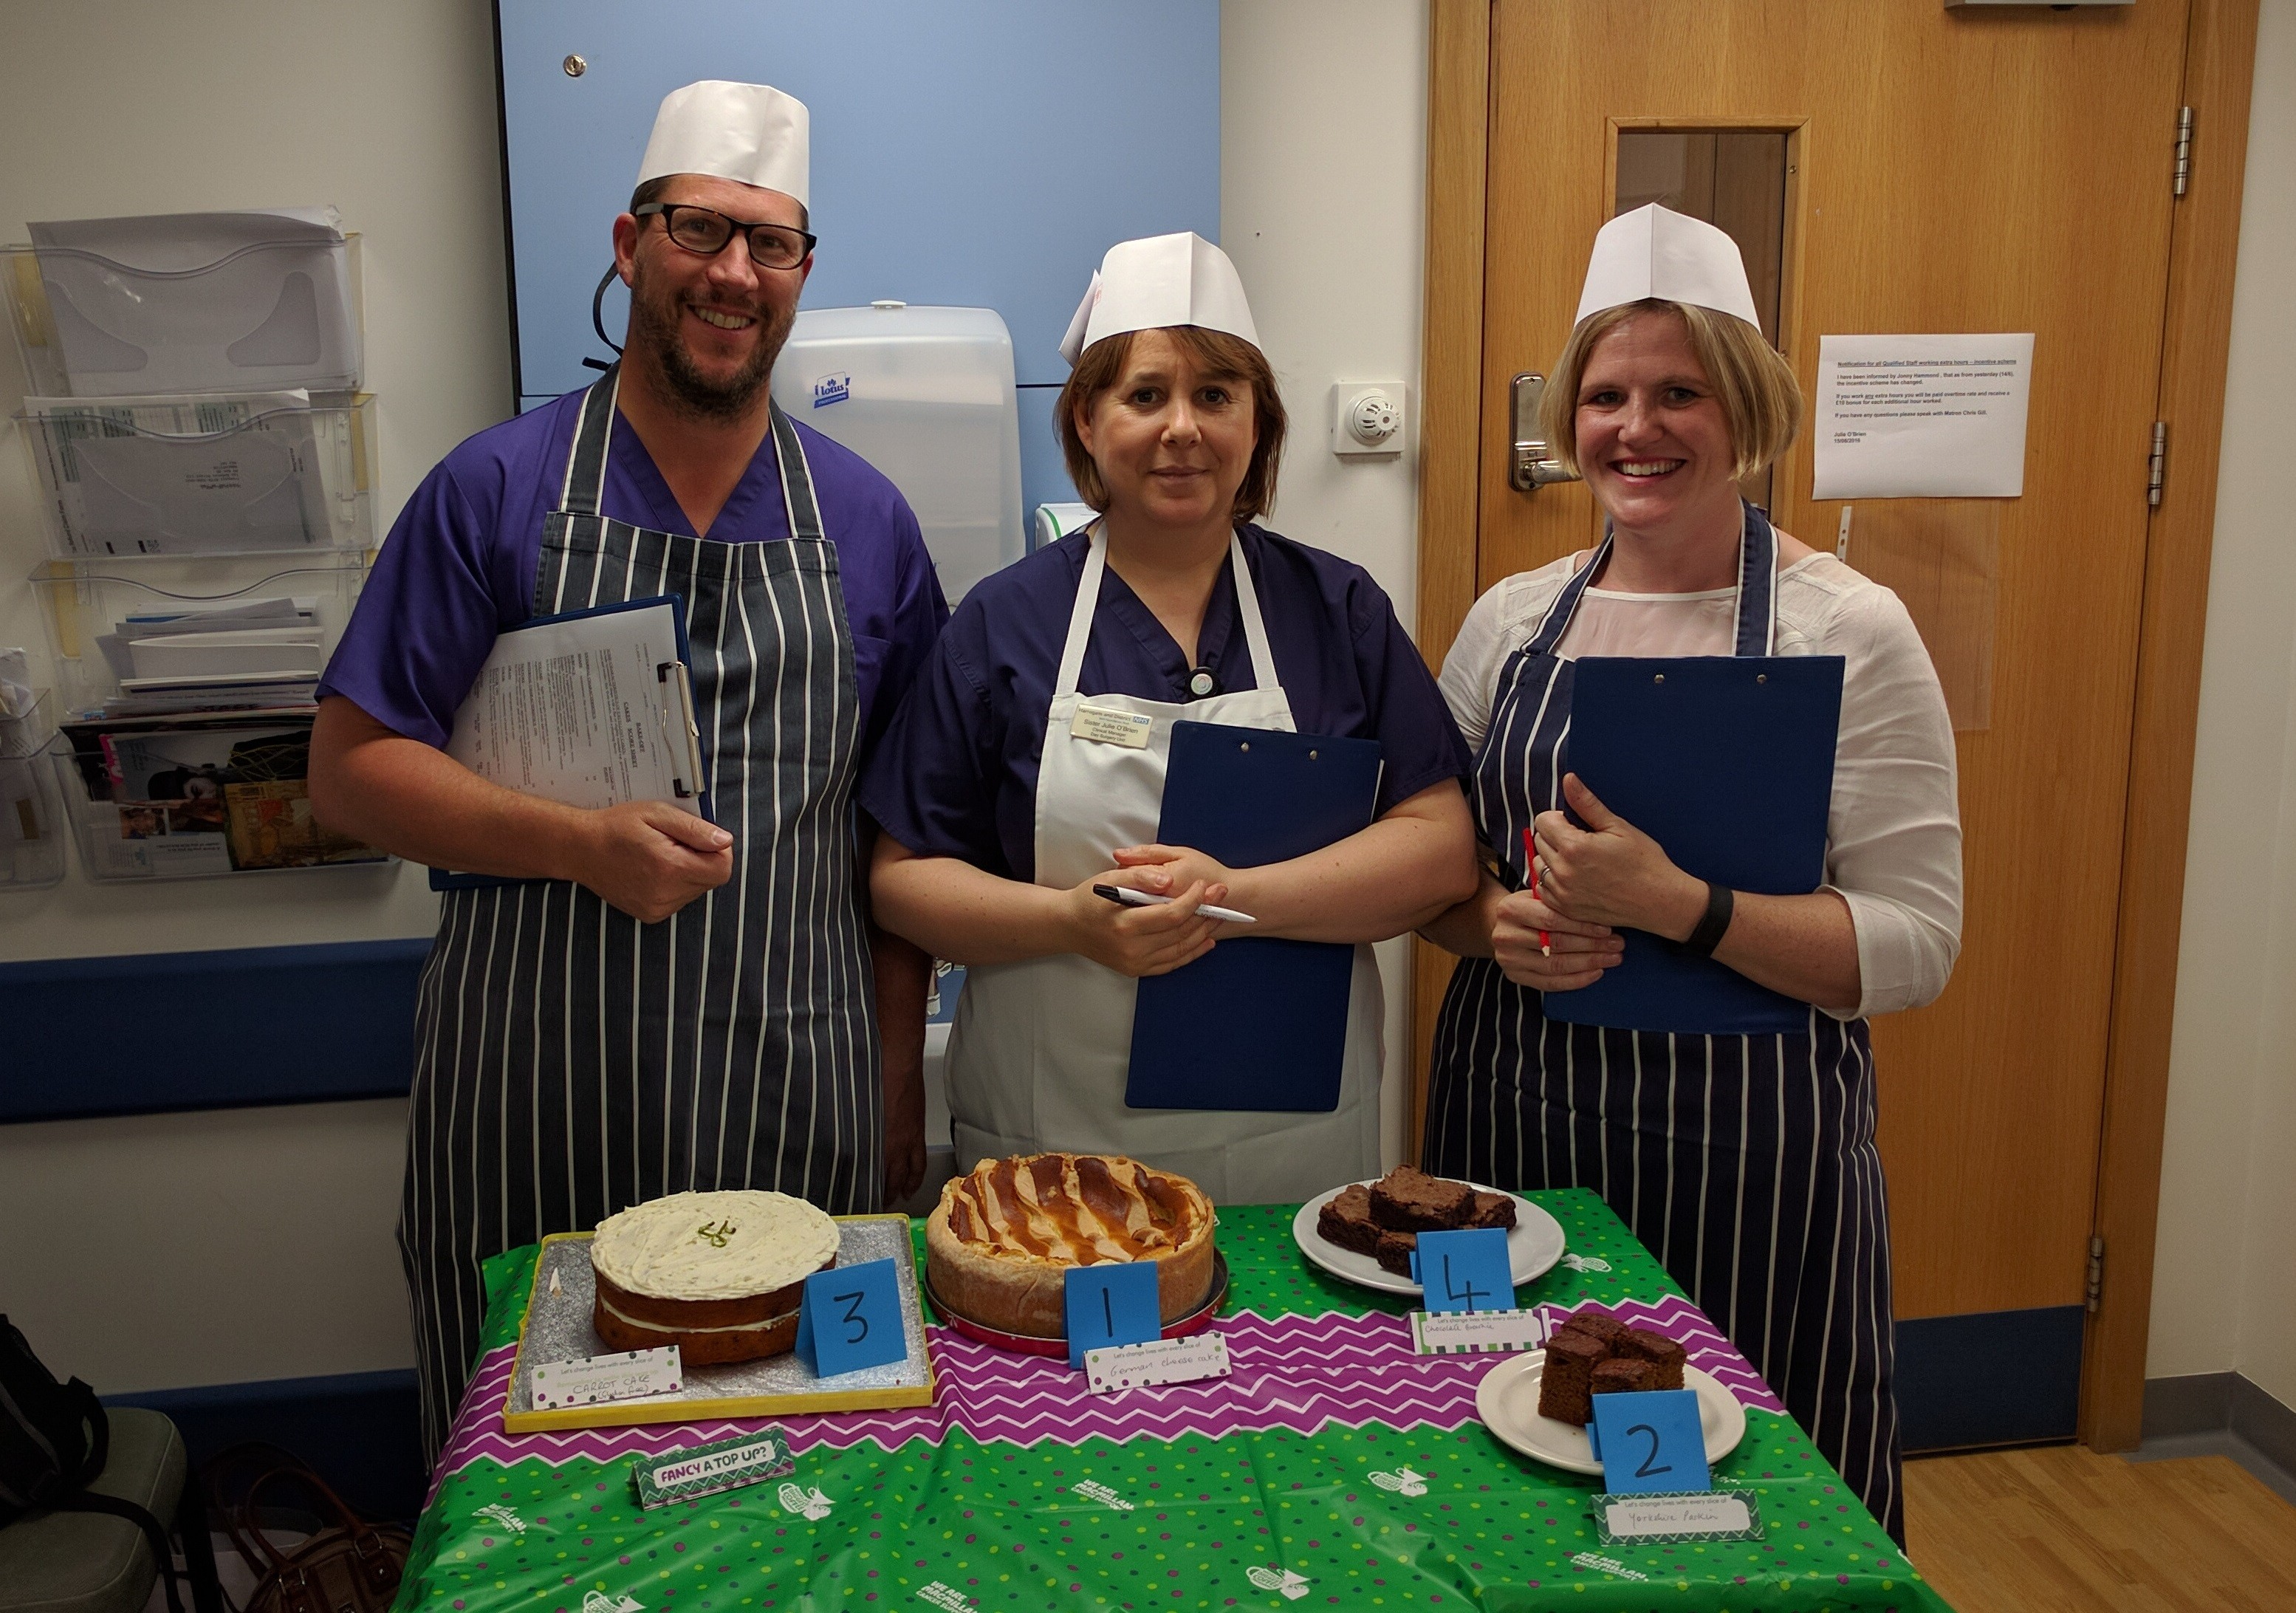 Sampling the delights - Staff play the part of Bake Off judges in best cake competition.